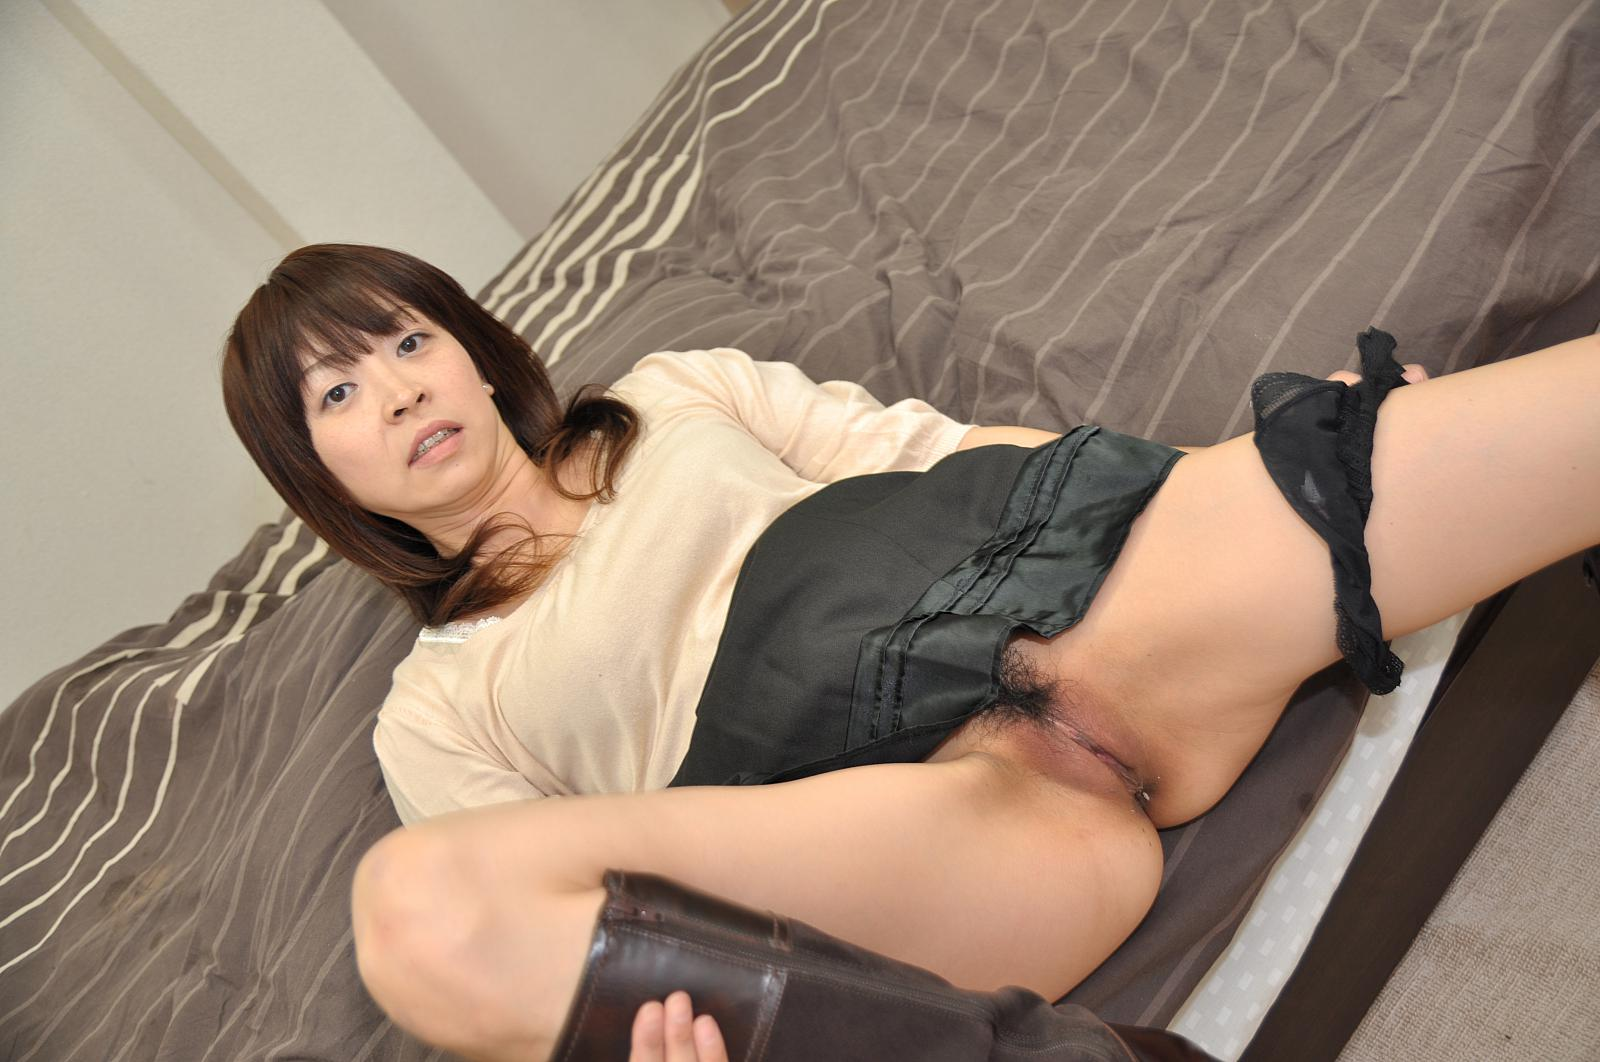 Maiko milf pussy Enter Maiko MILFs! Full Size Image